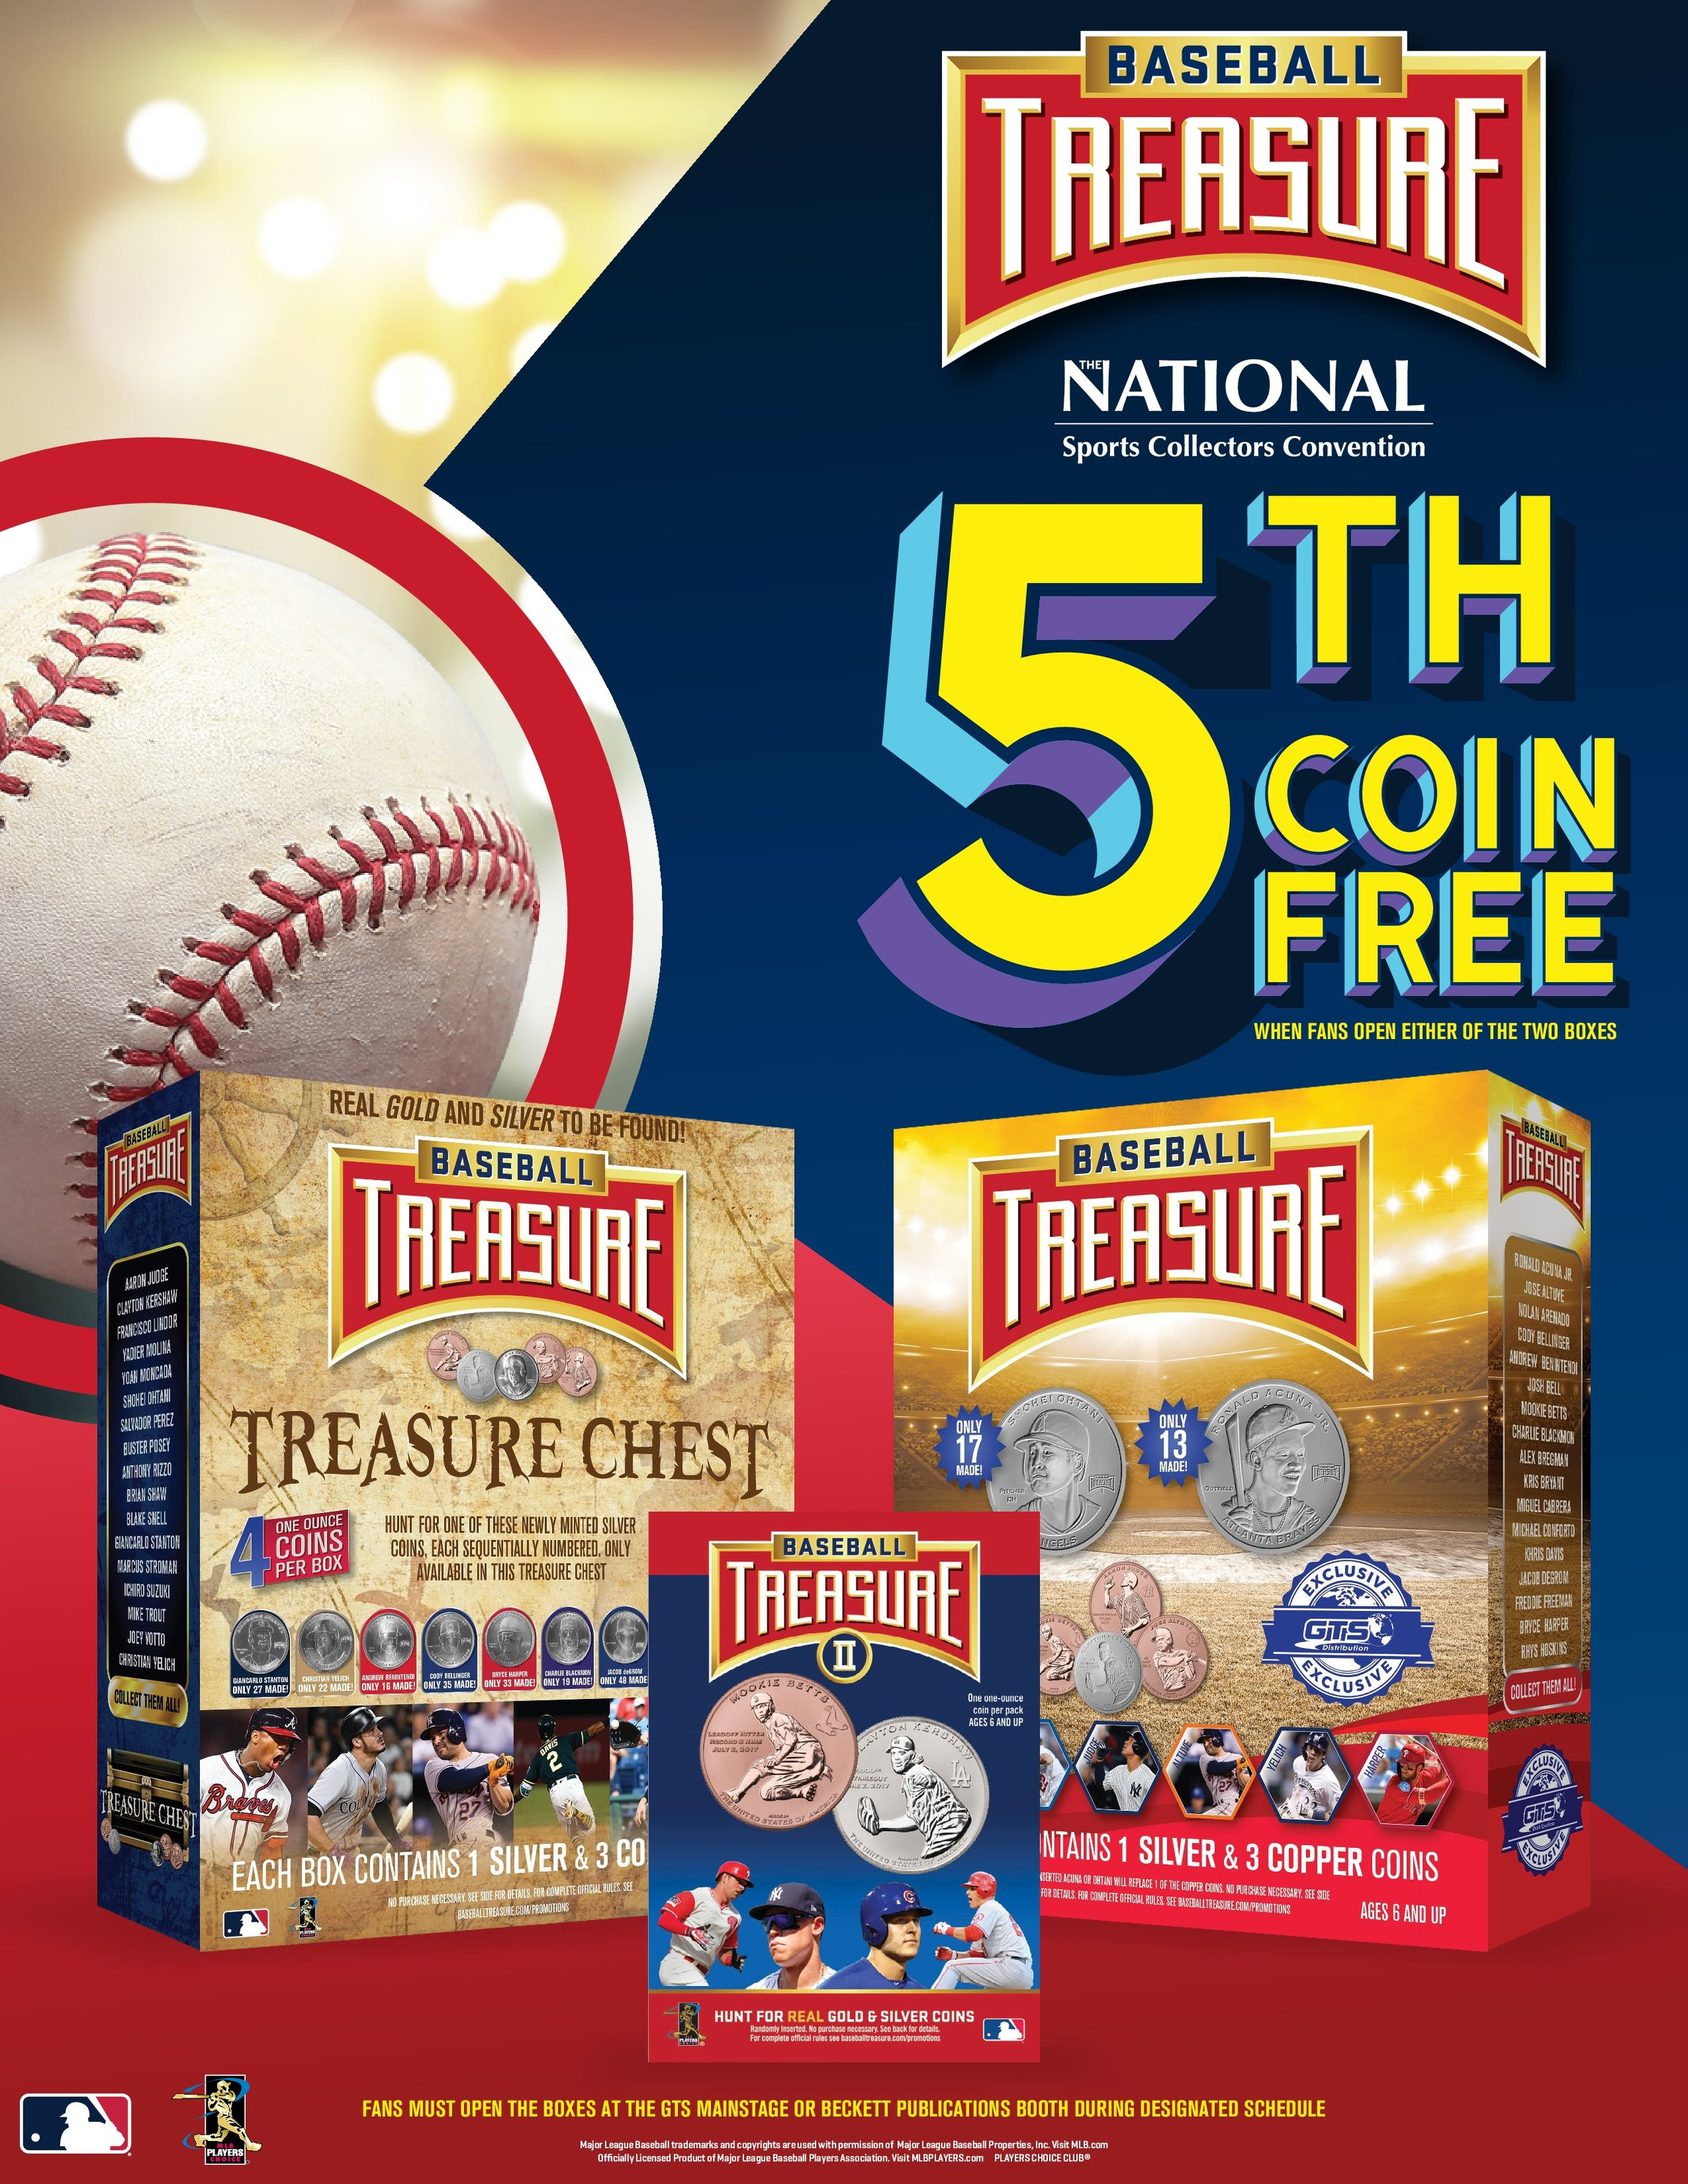 Any fan posting Baseball Treasure™ images from The National and tagging us, The National and GTS will win a free copper coin at the show.  Anyone posting a sighting of one of the numbered silver  Shohei Ohtani  or  Ronald Acuna  special numbered   silver coins   from Chicago, and tagging the  GTS ,  The National  and  Baseball Treasure™  will win a bonus unnumbered   silver coin   (player chosen at random).   The National Box Bonus -   At the 2019 National in Chicago, next week, fans who break this product LIVE at the Beckett booth during the whole show, or the GTS Mainstage at designated times, will get a bonus blind packed coin - a 5th coin at no charge - either a copper or silver coin of a baseball great! We'll be exhibiting a complete set there, talking with fans and posting about their hits!